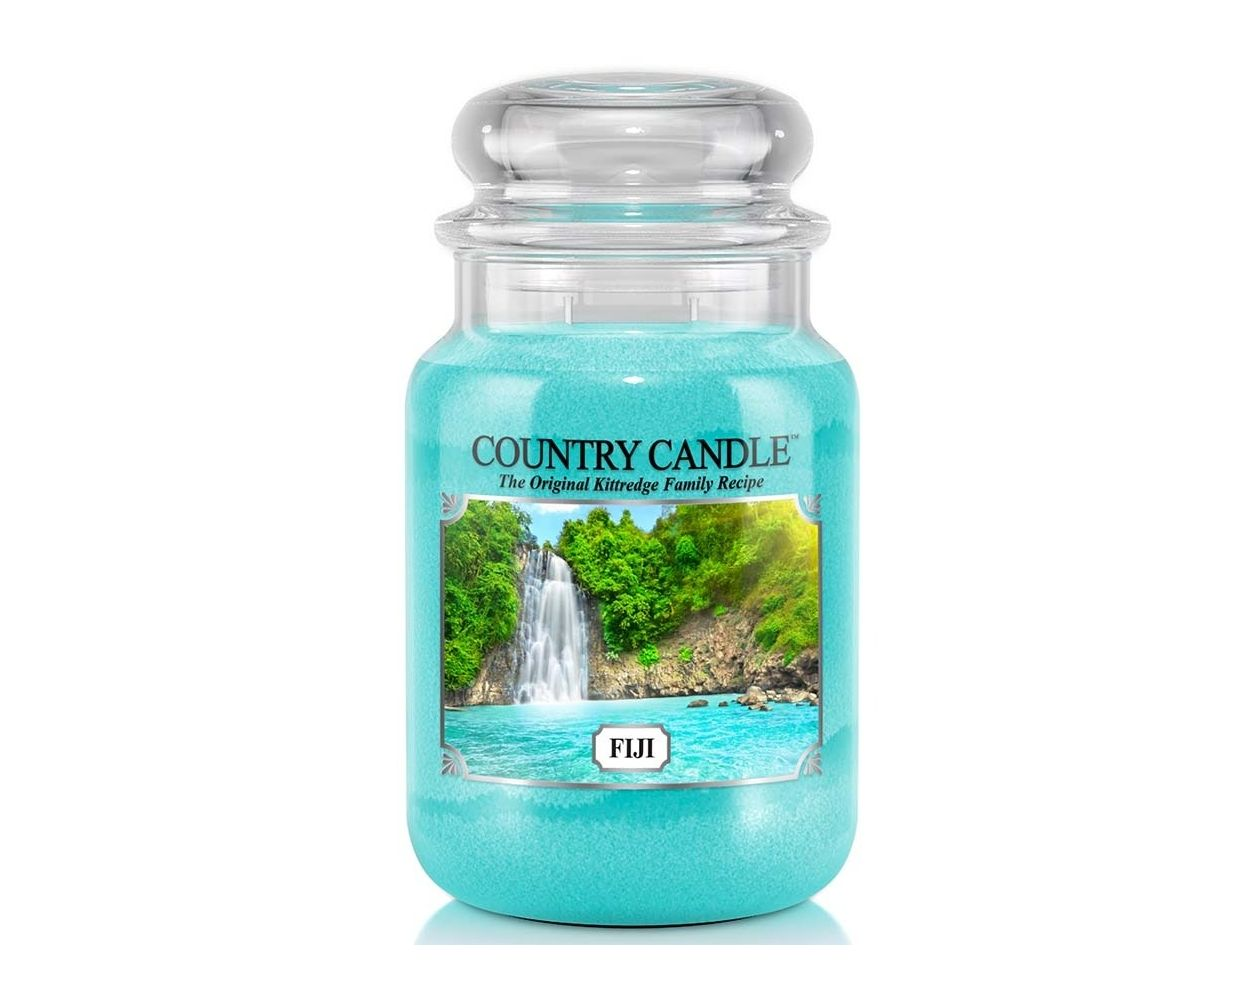 fiji from country candle